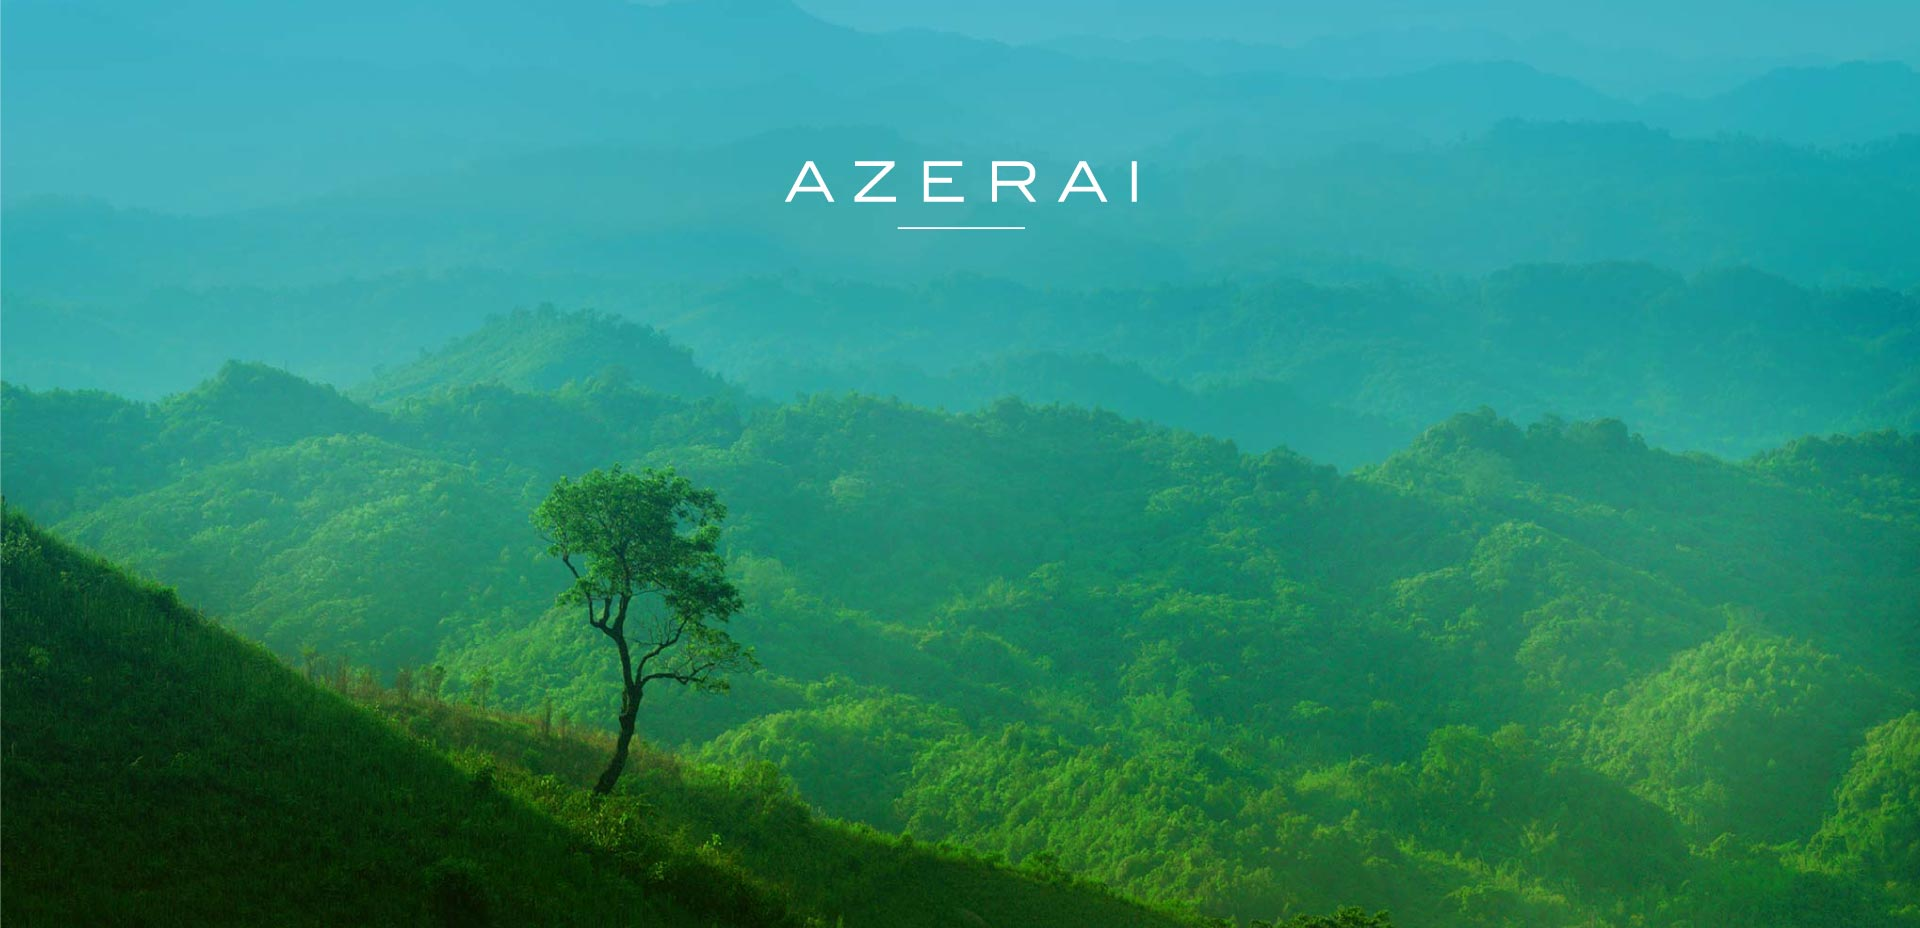 Azerai debuts its new brand in Luang Prabang